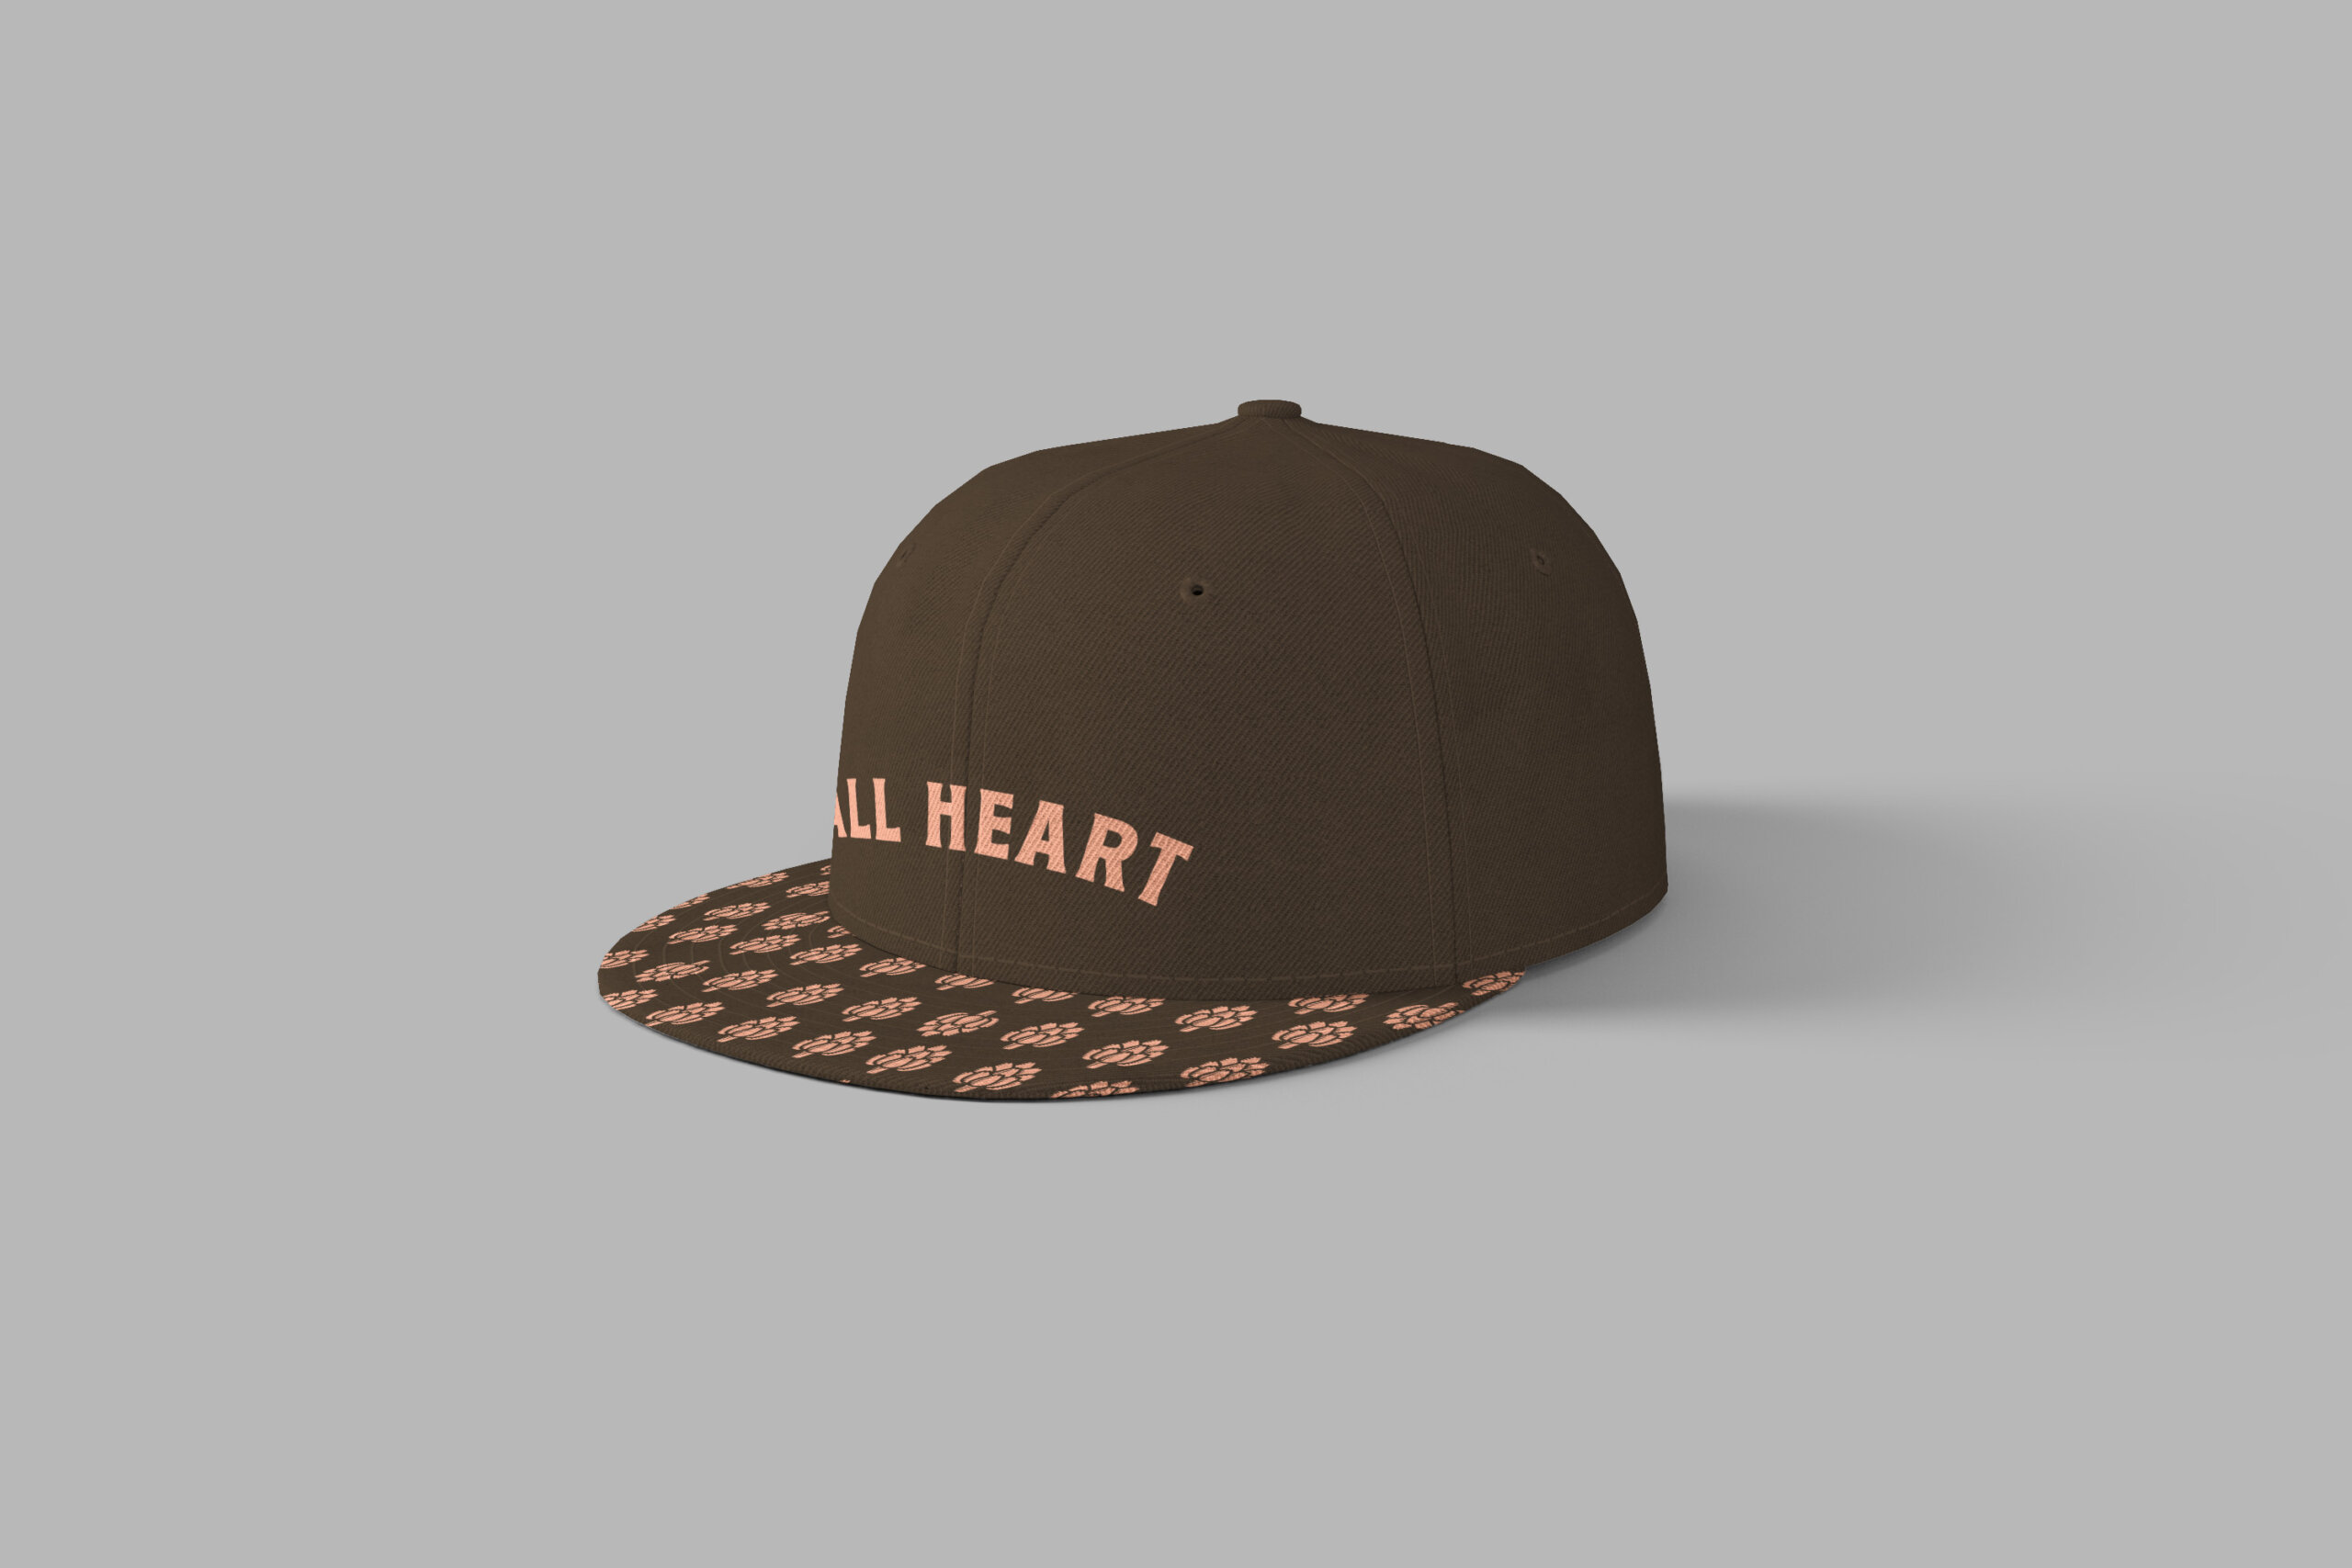 All Heart Cap